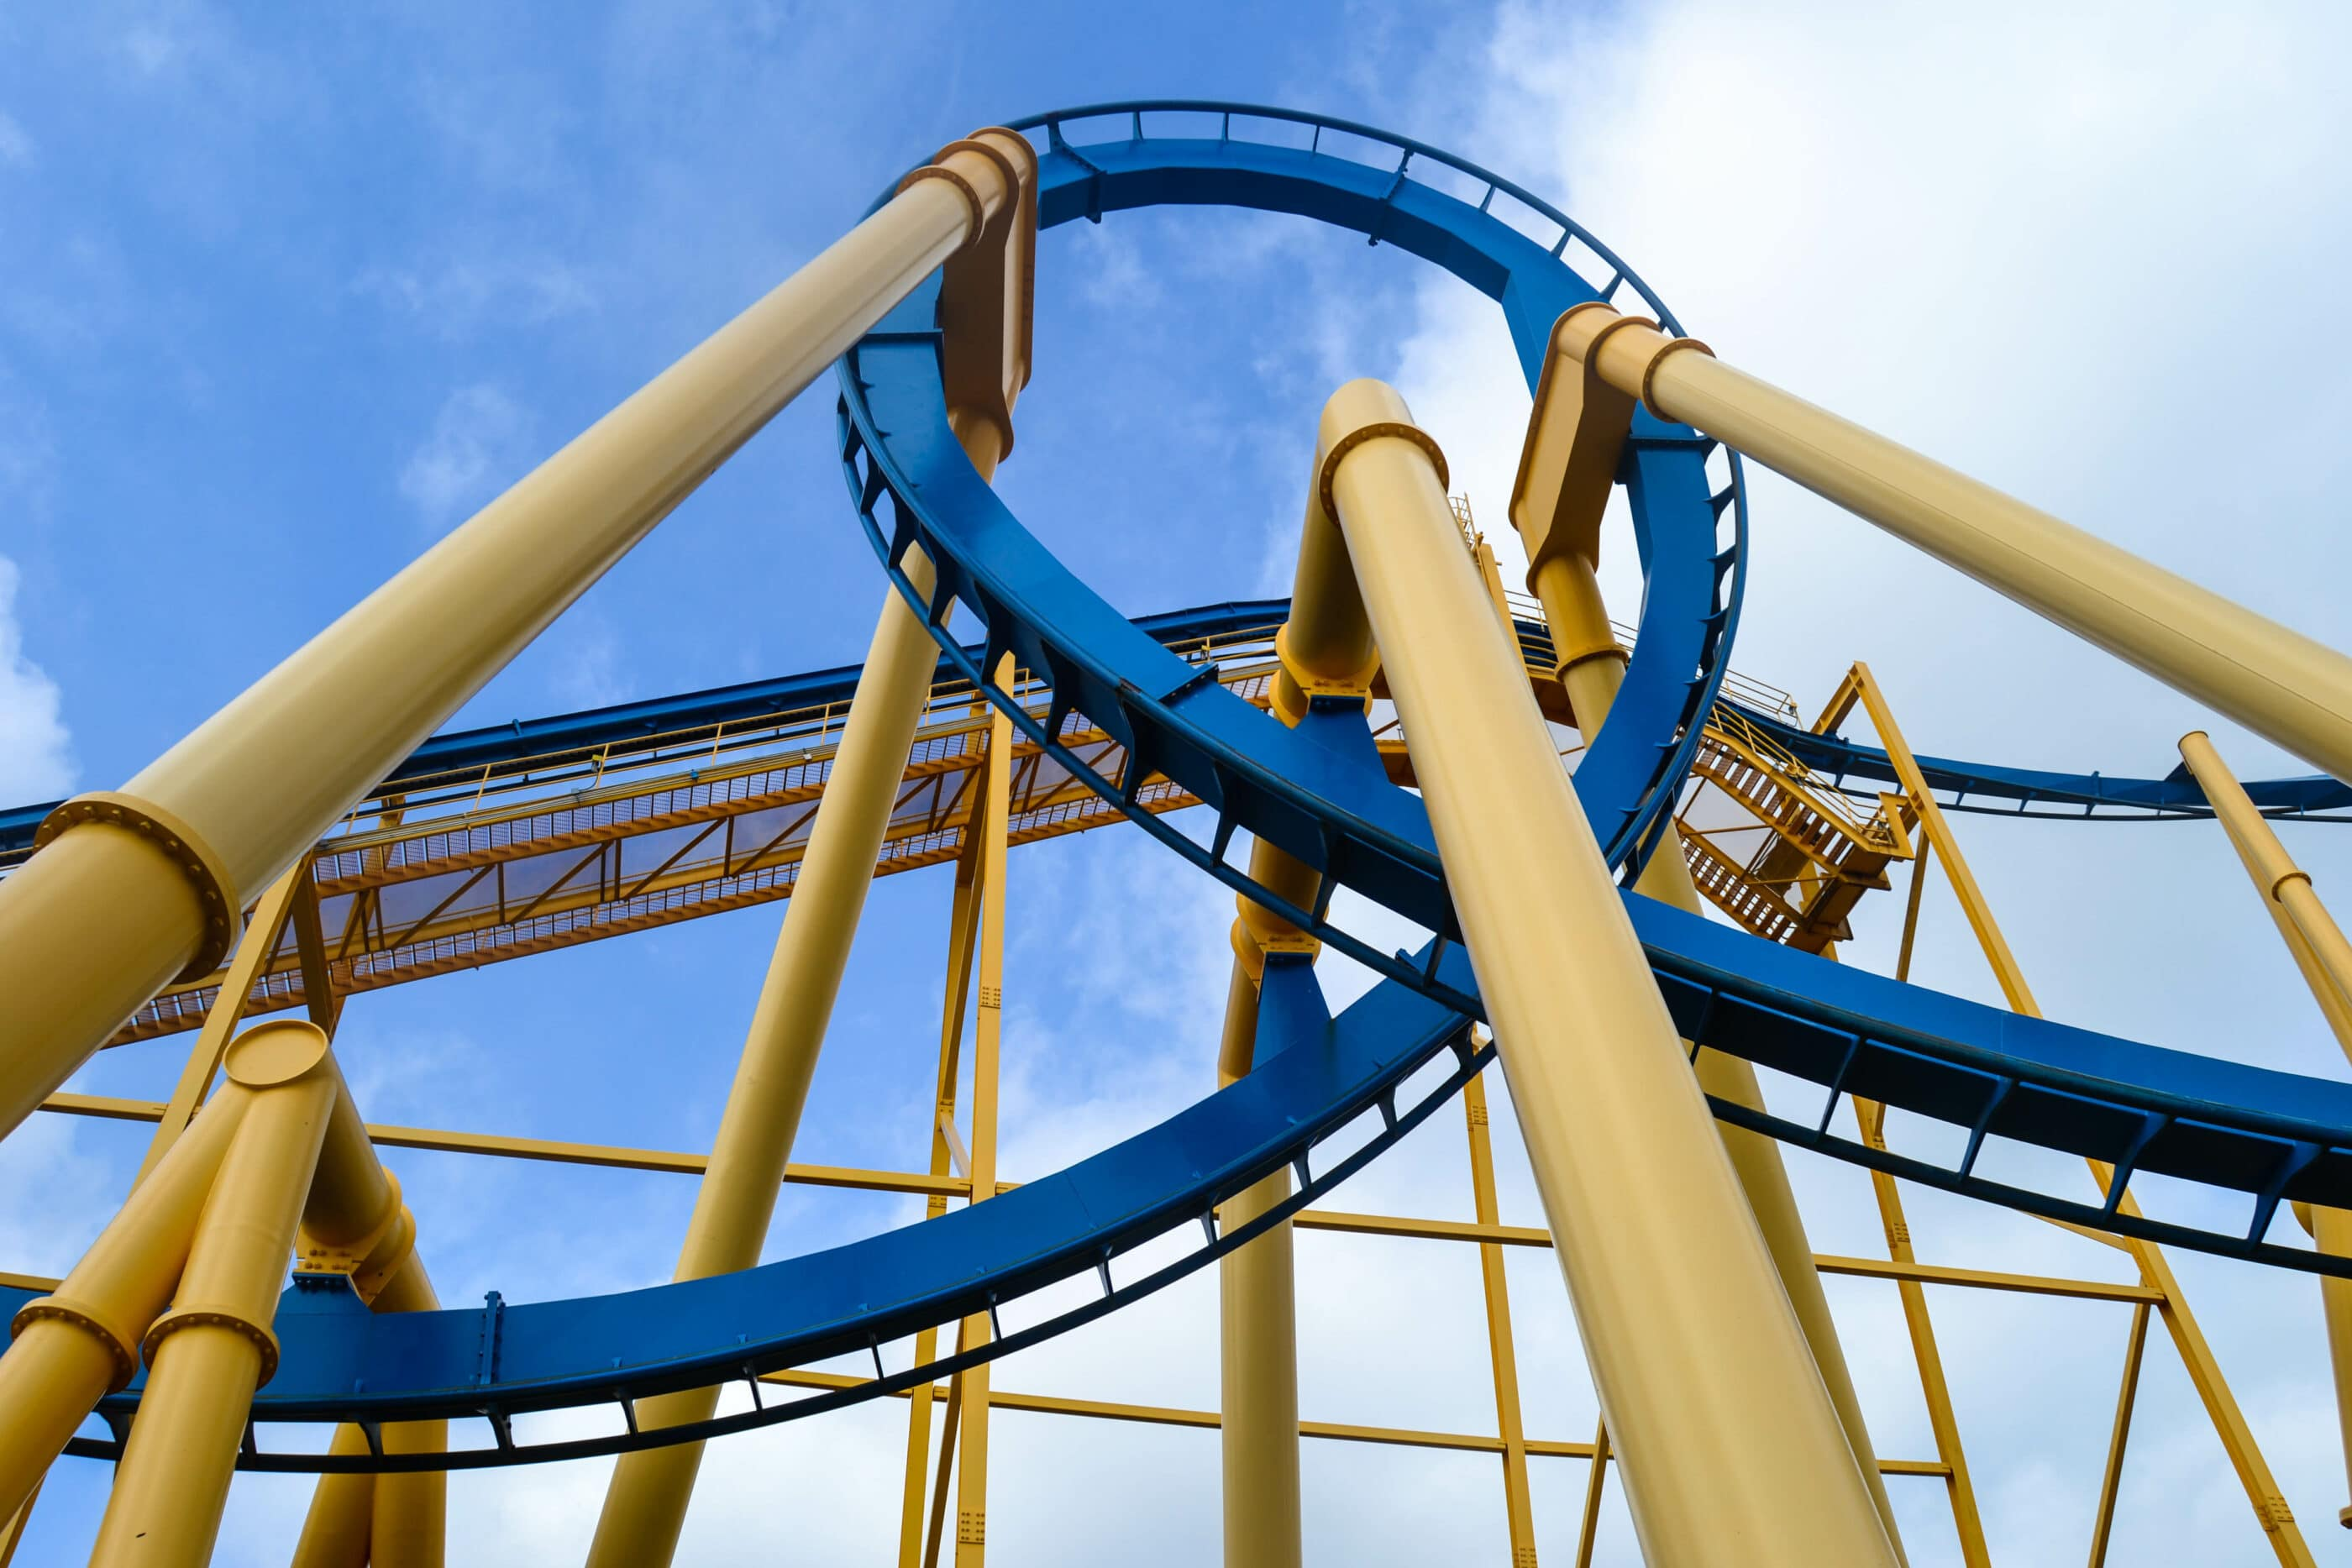 How To Buy Six Flags Fiesta Texas Discount Tickets 2021 8 Easy Ways